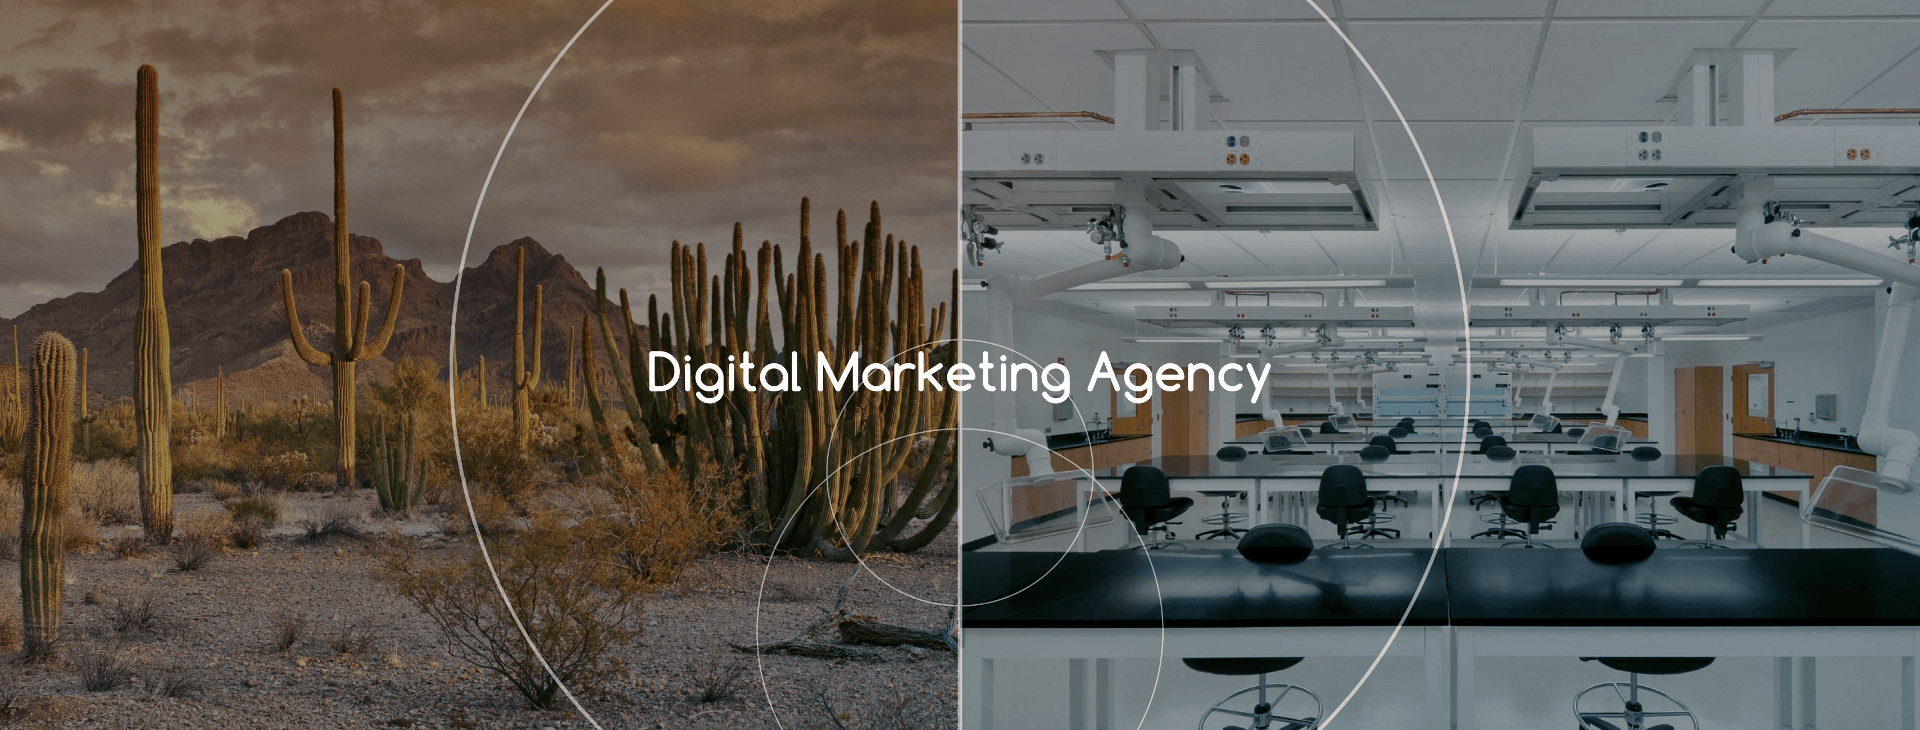 digital-marketing-agency.png